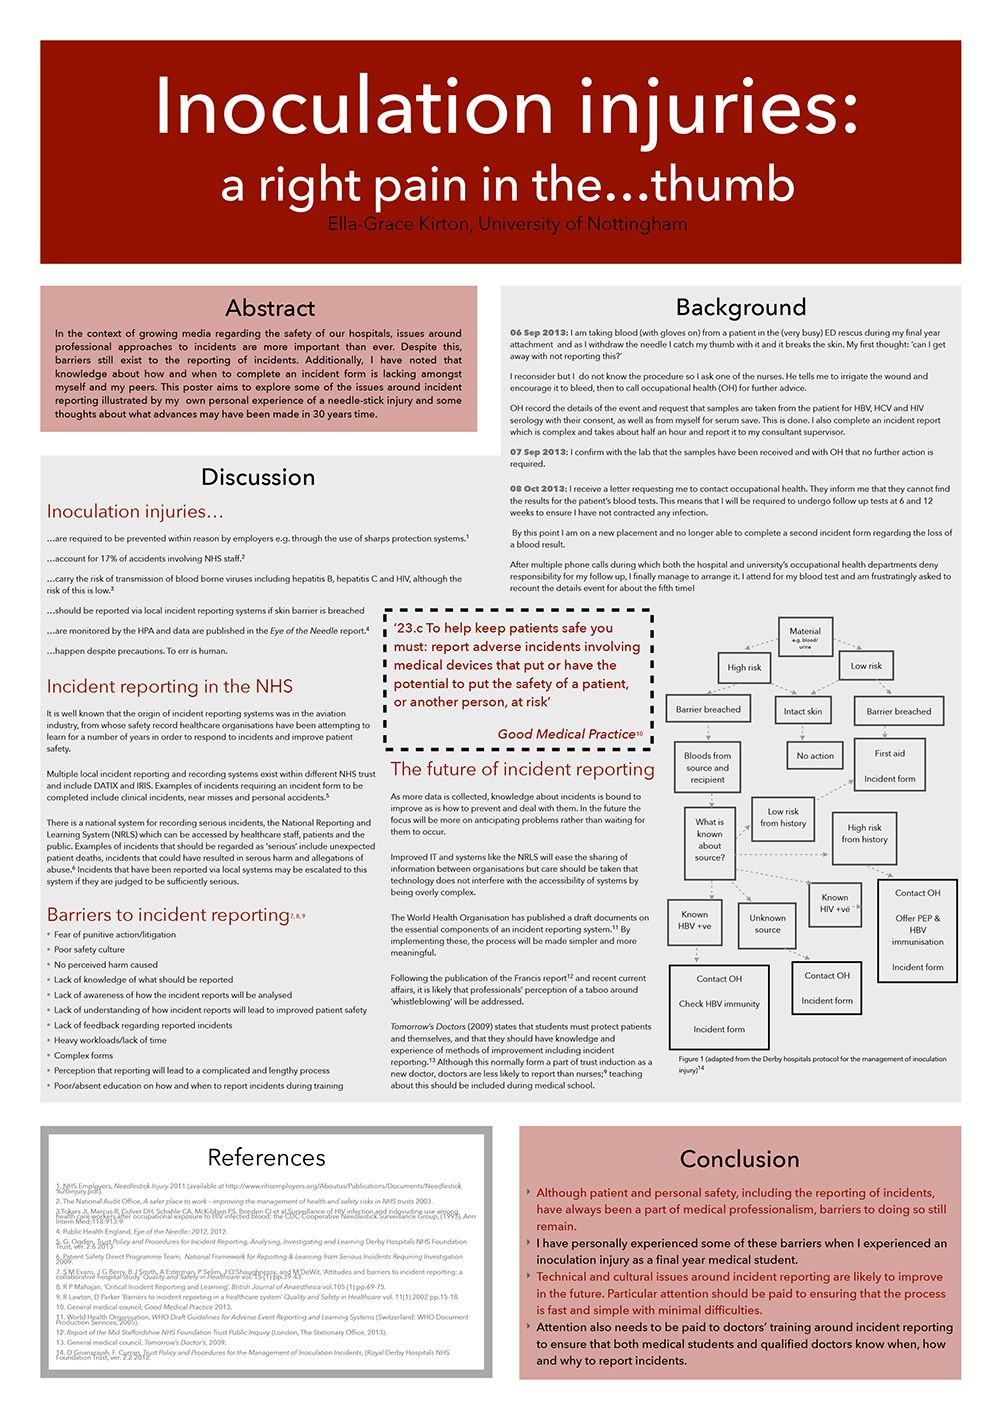 Student poster competition: Inoculation injuries: A Right Pain in